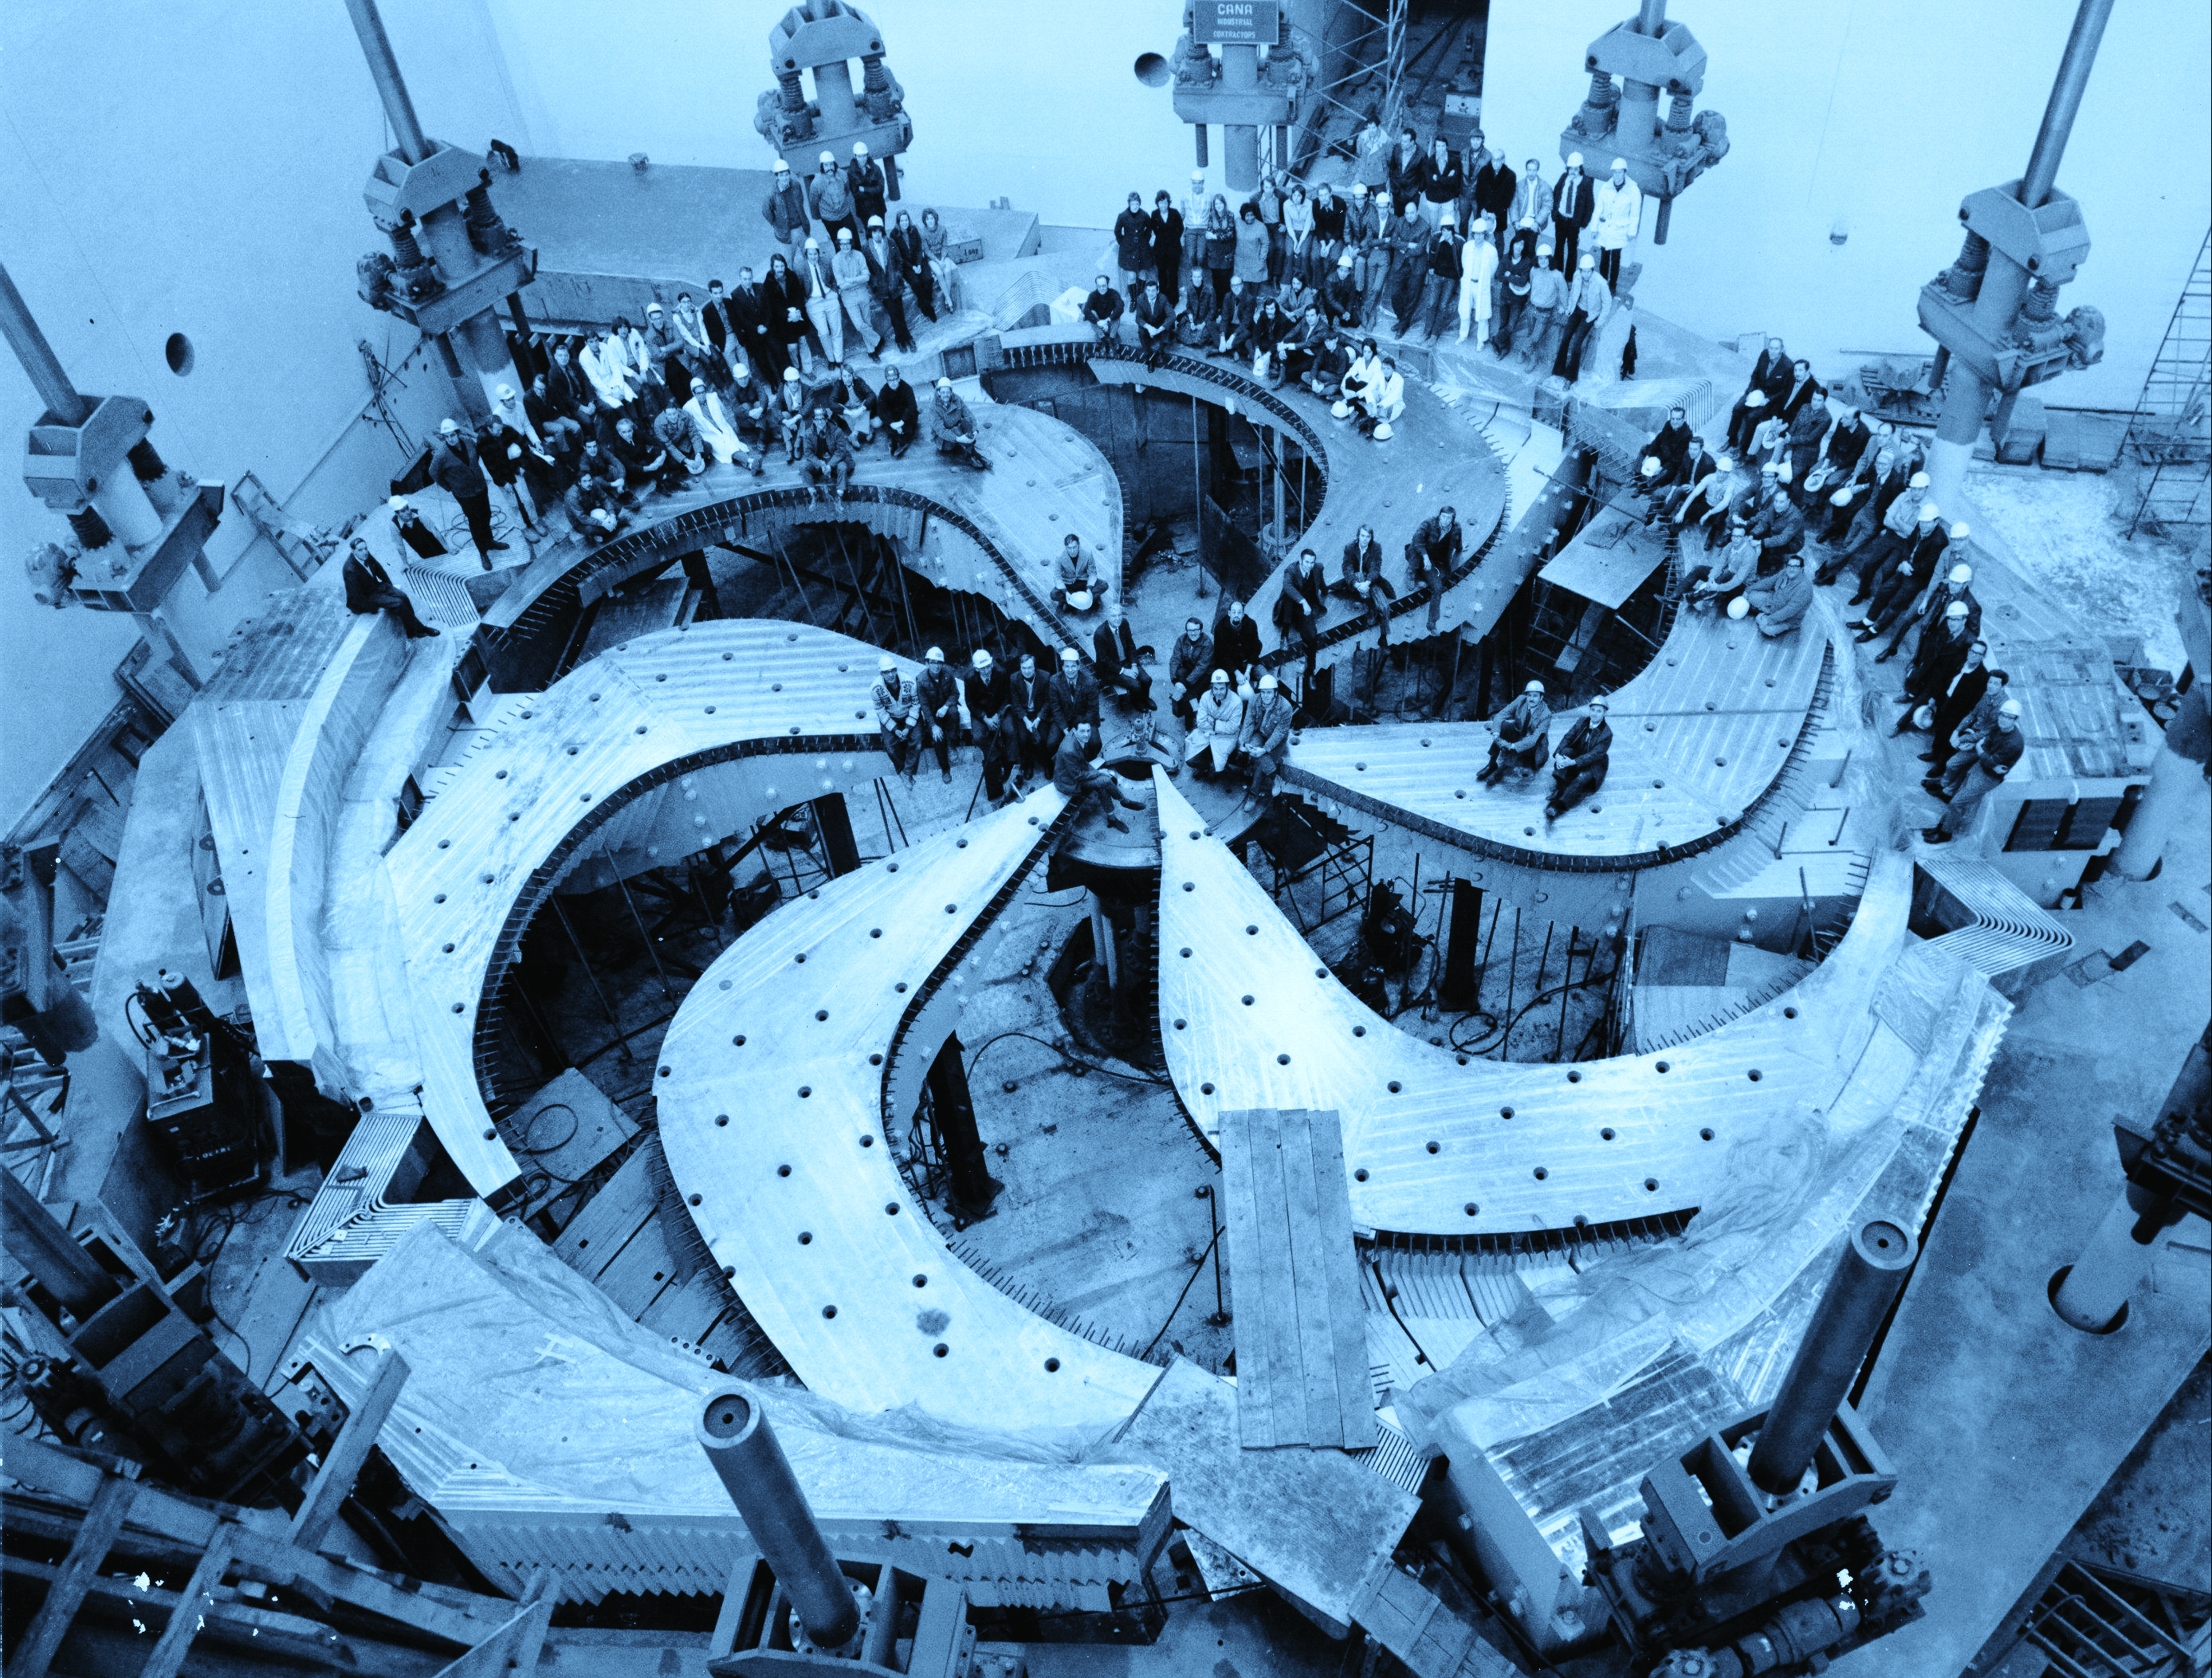 OCEM supplies current-controlled power converter to world's largest cyclotron